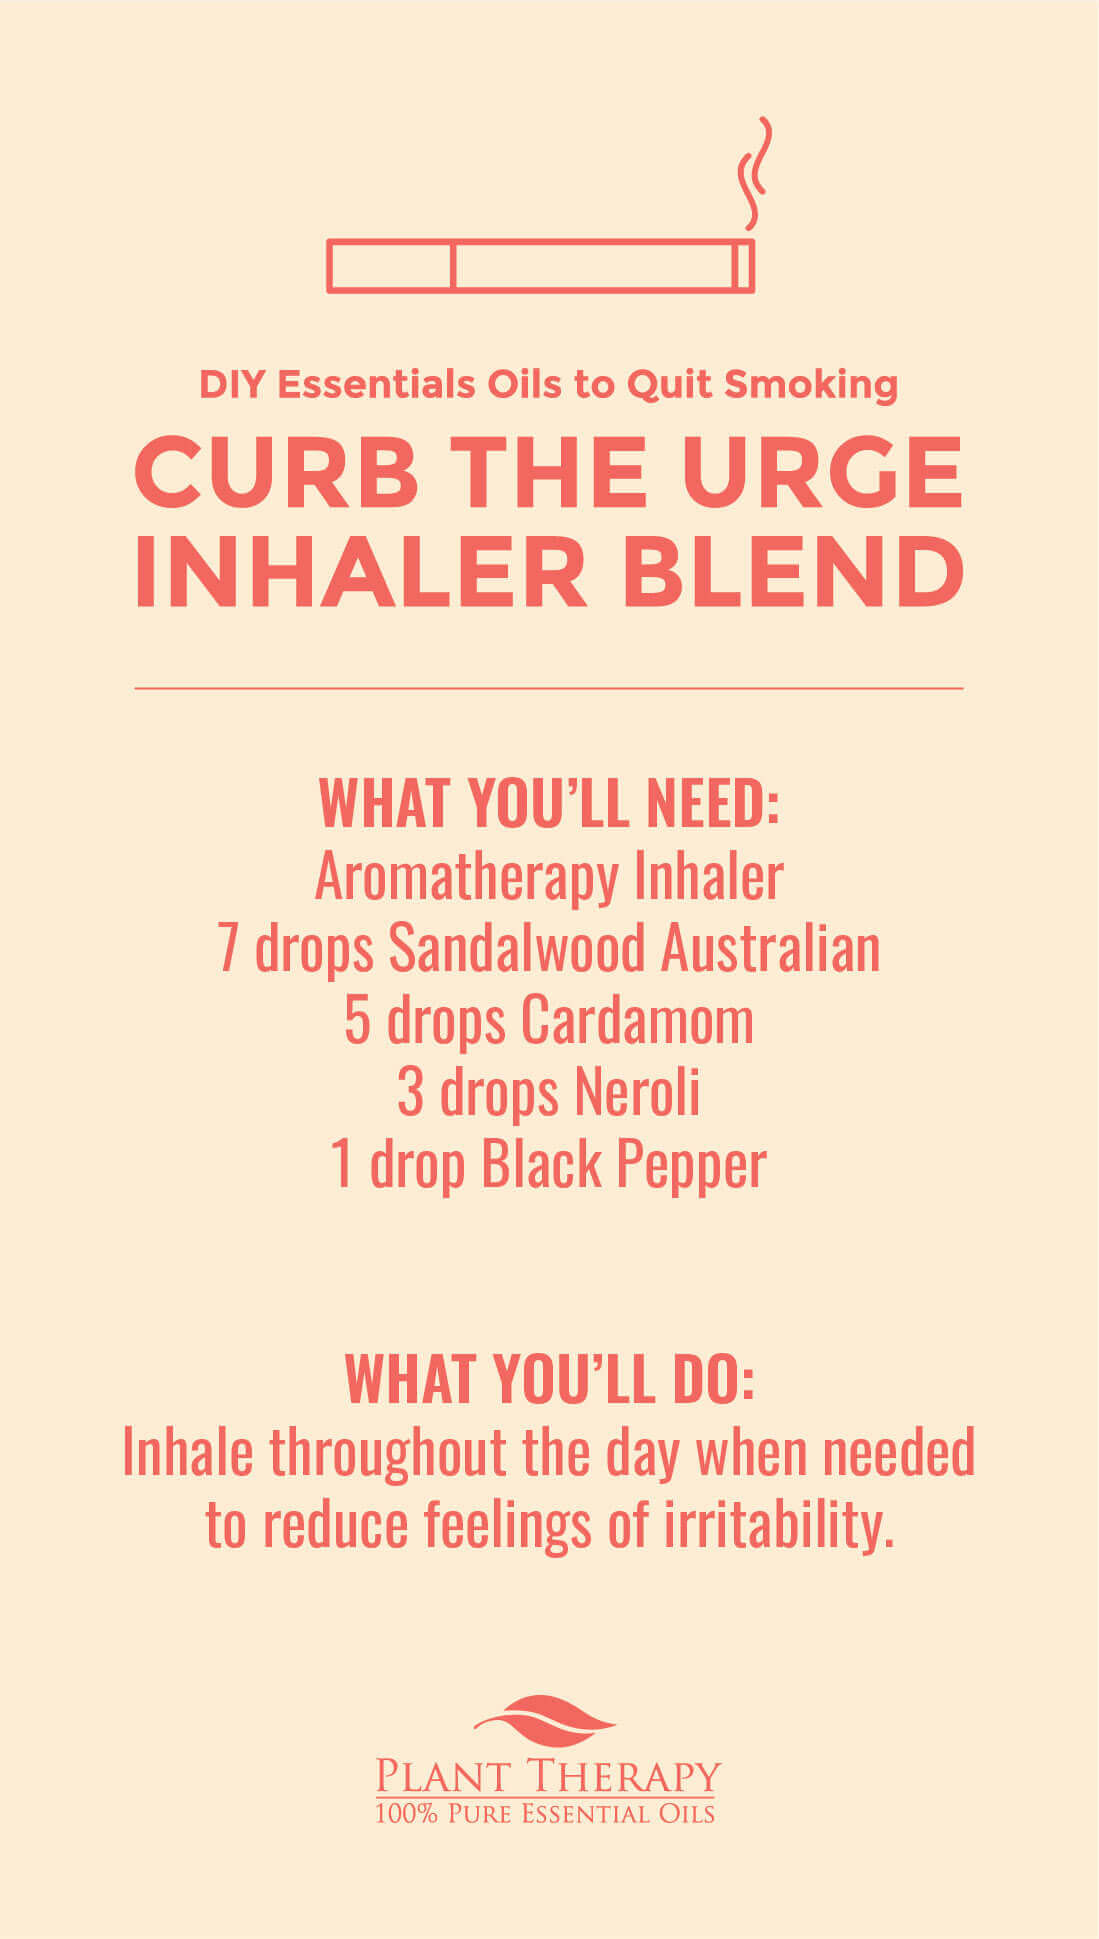 curb the urge inhaler blend diy essential oils to quit smoking